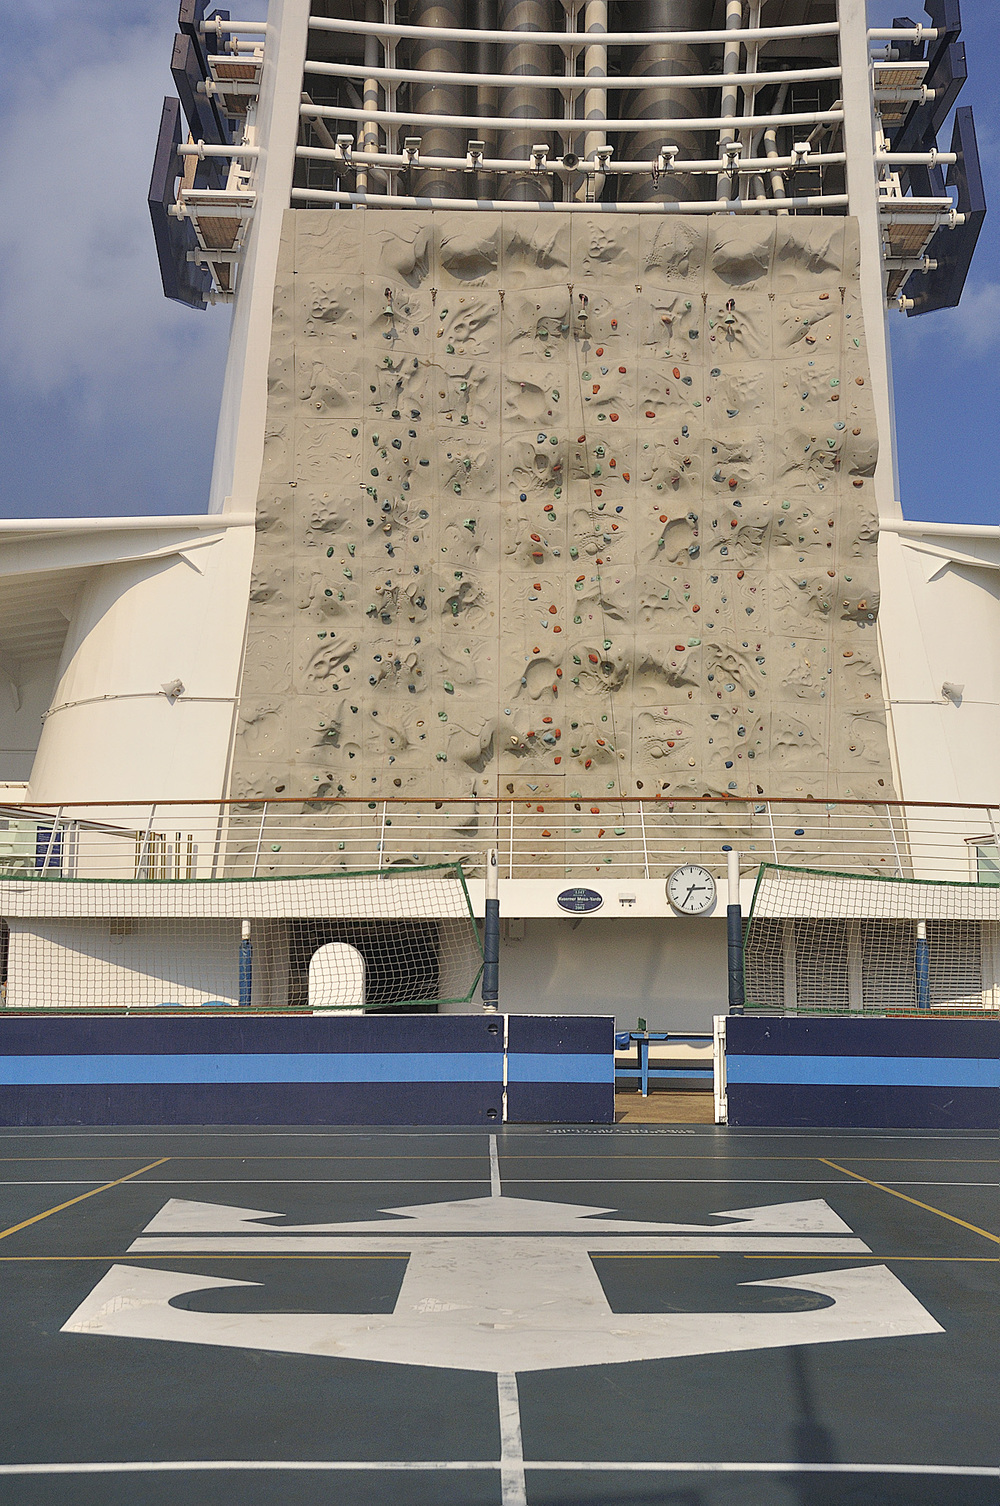 Basketball court and rock climbing wall